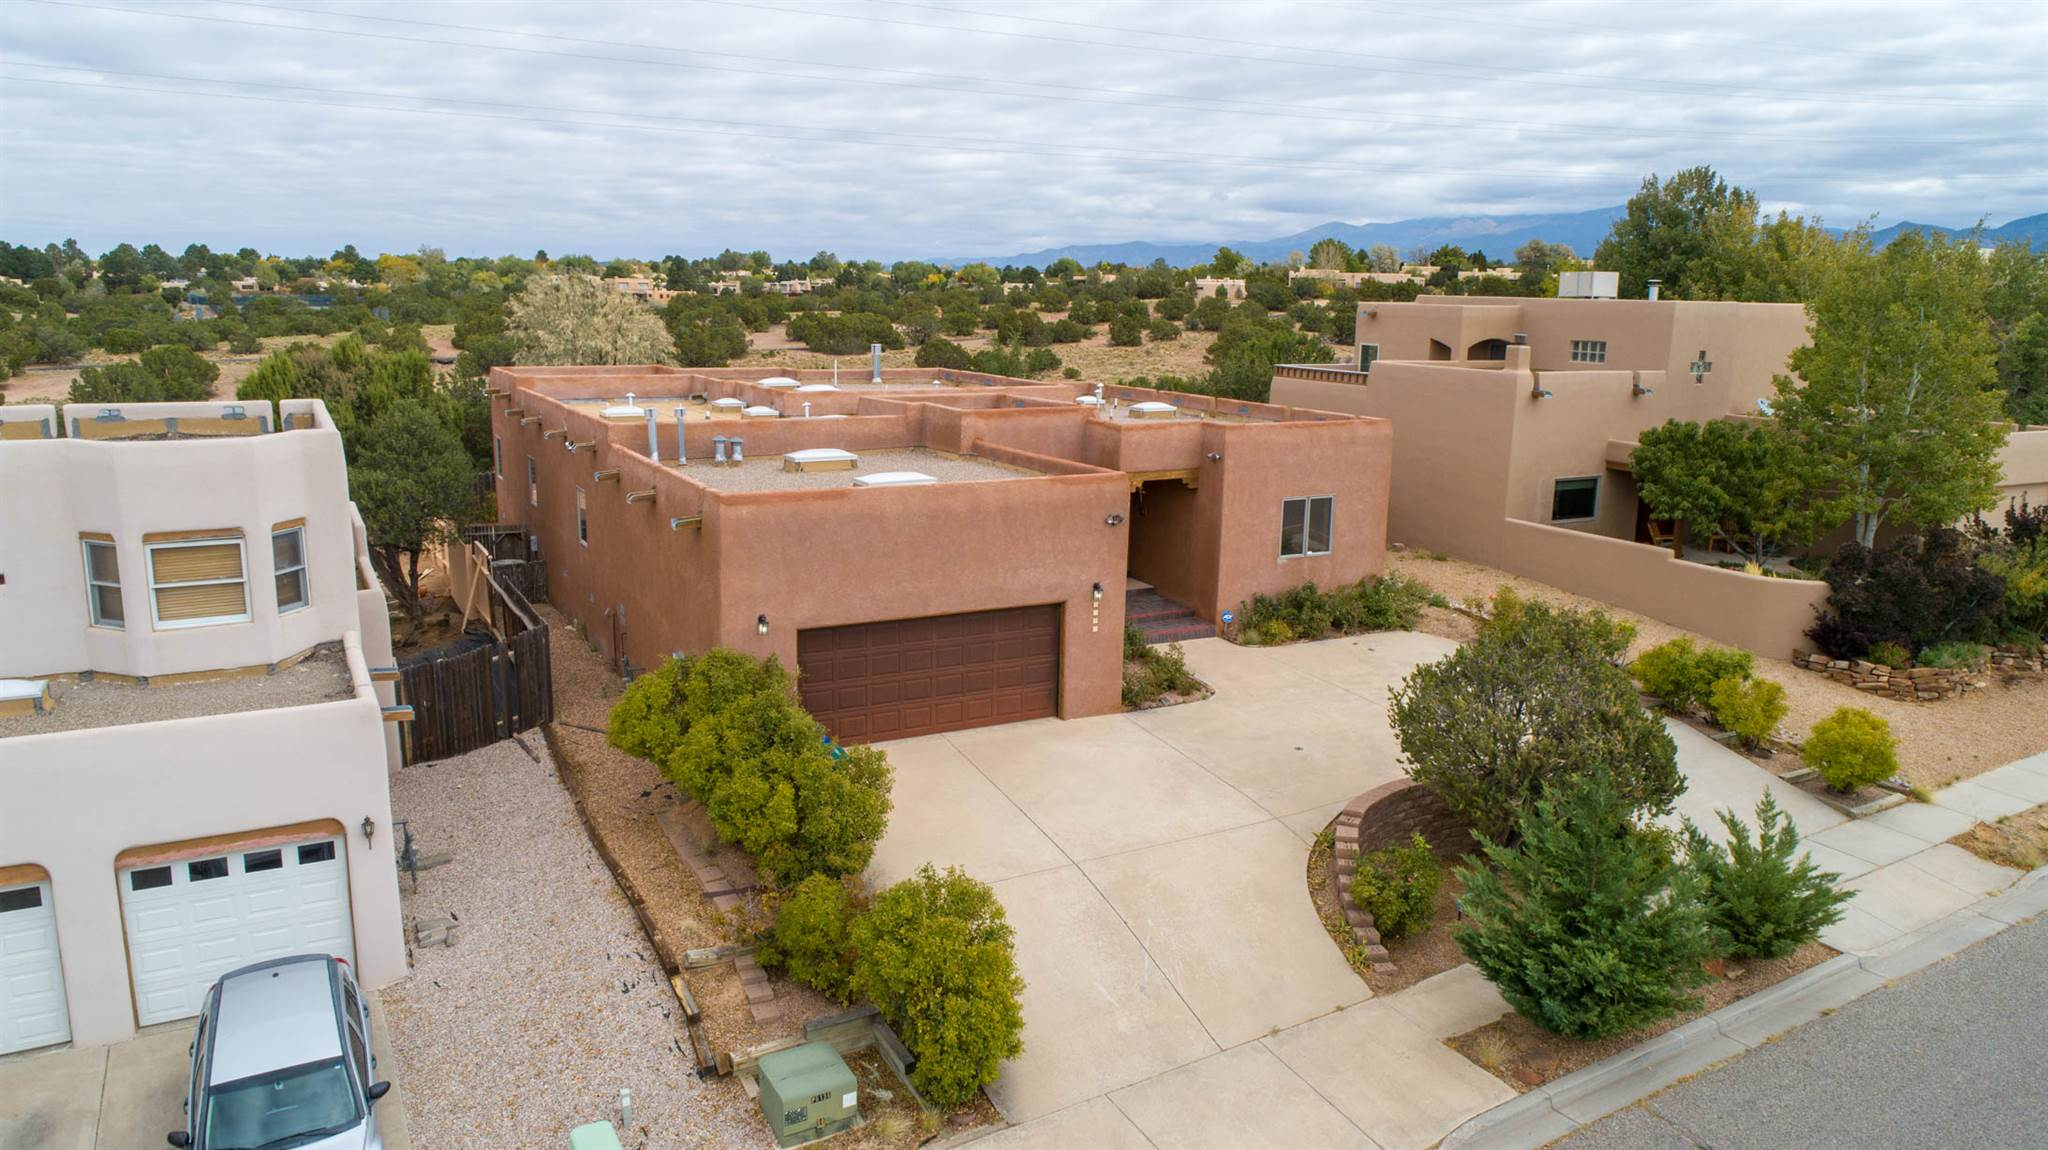 Single Level Floor Plan, in the coveted Pueblos del Sol neighborhood that borders greenspace. Wood ceilings beckon you into this thoughtfully designed home that creates the perfect place to entertain. You will find a wet bar with a mini fridge, powder room, gas fireplace flanked by view windows, bancos, a multitude of kitchen cabinets, a prep sink, and a breakfast area that leads to an expansive portal to take in the spectacular Sangre views. Featuring plantation shutters, central Air Conditioning, ample storage, separate dining room with built in cabinetry, and a family room/office with portal entry. Walking trails close by and minutes by car to all the south-side conveniences. About 10 minutes to the historic Santa Fe Plaza.